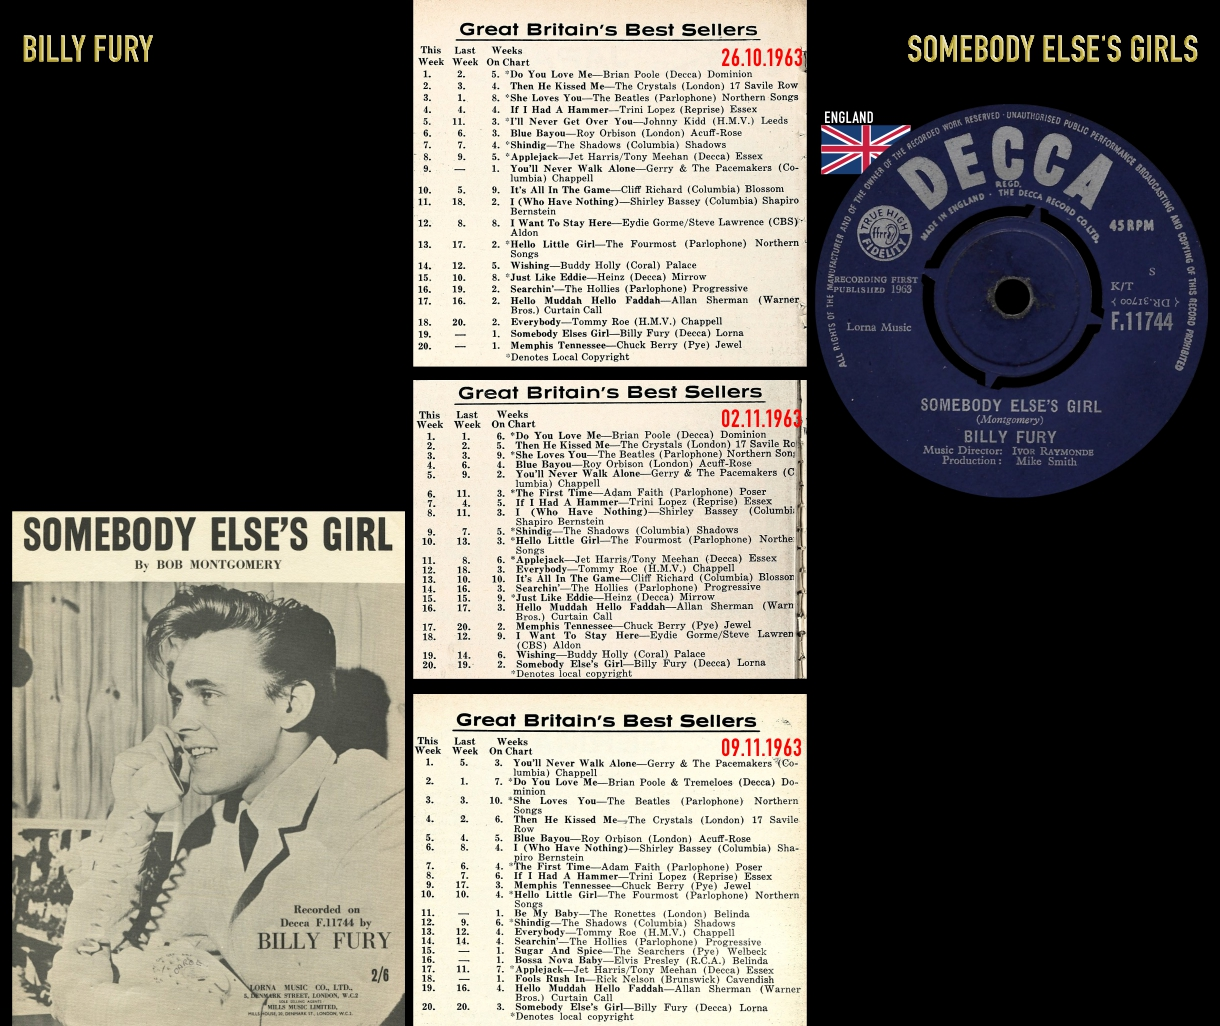 631005_Billy Fury_Somebody Else's Girls